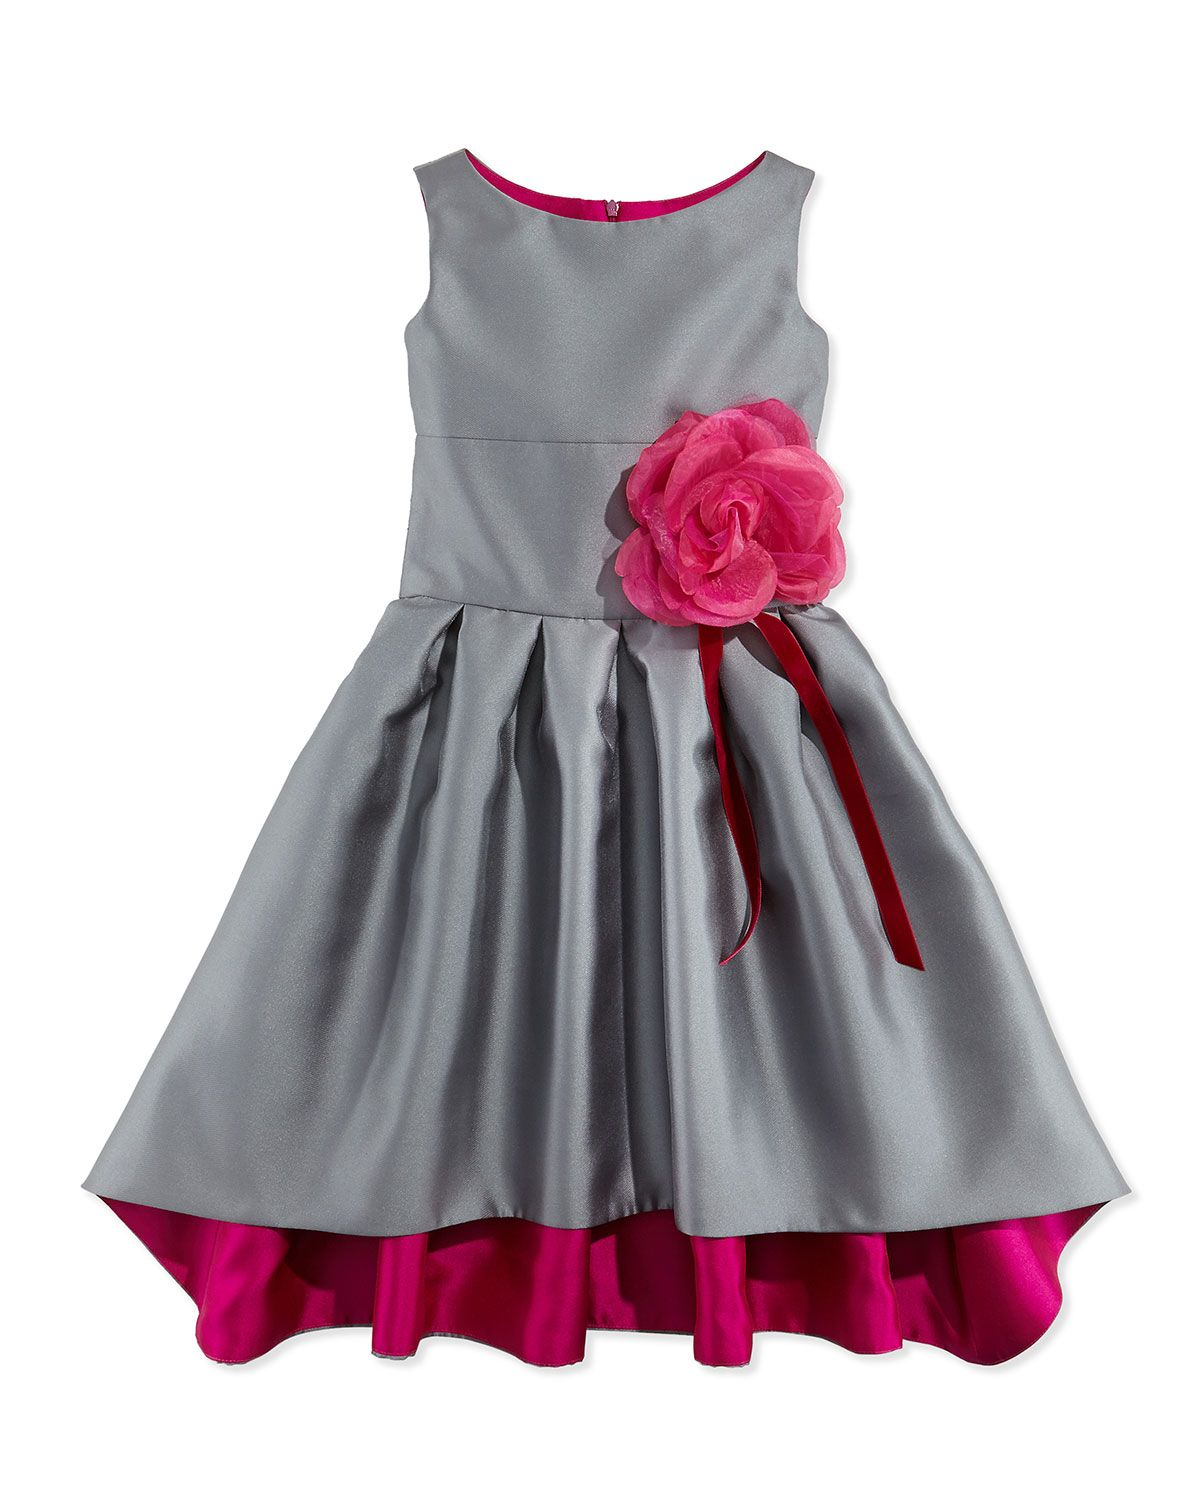 Girls Clothes Clothes For Girls Fashion For Girls Neiman Marcus